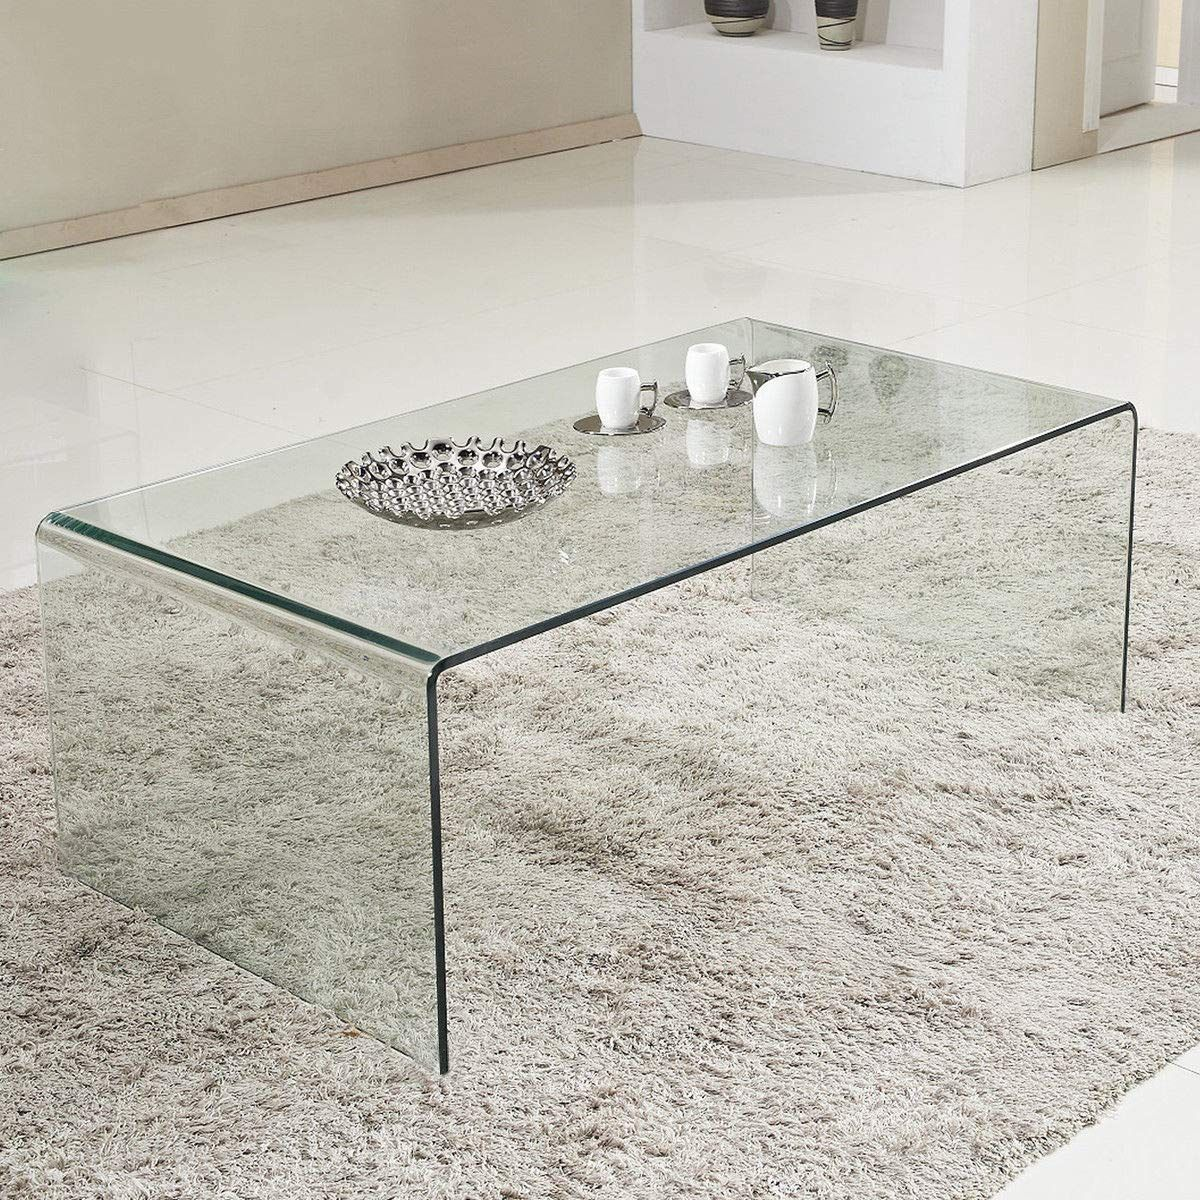 Tempered Glass The Material Of Coffee Table Is Thick Tempered Glass The Strong And Durable Modern Glass Coffee Table Acrylic Coffee Table Glass Coffee Table